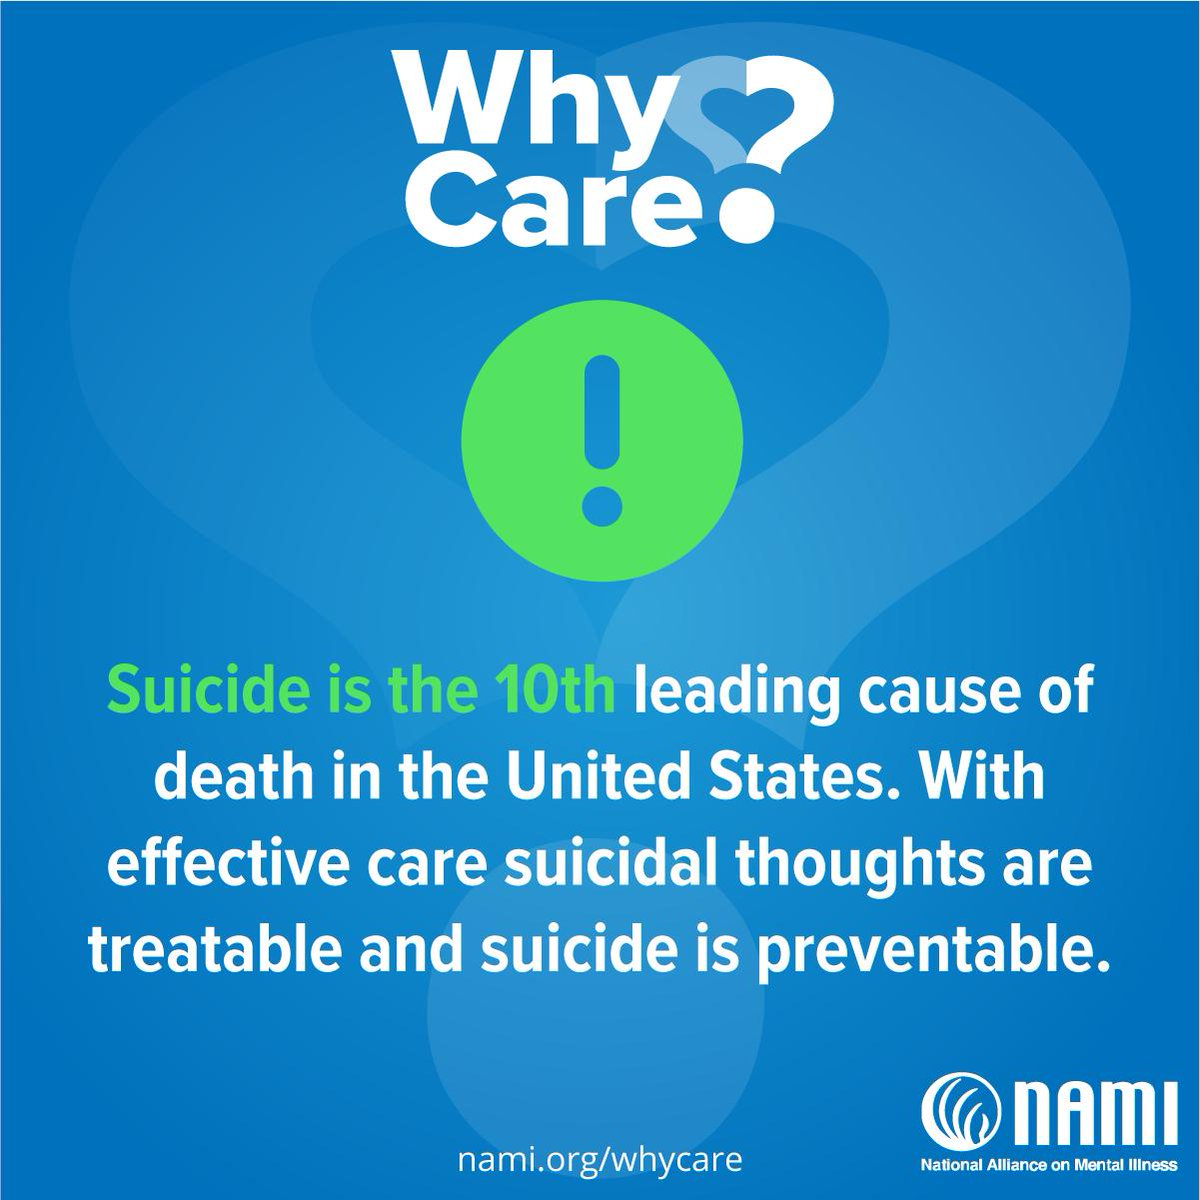 We cannot let people struggle in silence. We need to recognize the warning signs when someone is struggling and make sure the get the help they need. Show you care by making a donation to NAMI: https://t.co/N36DOVMidj #WhyCare #NAMICares https://t.co/0AcD5xZ0Hg